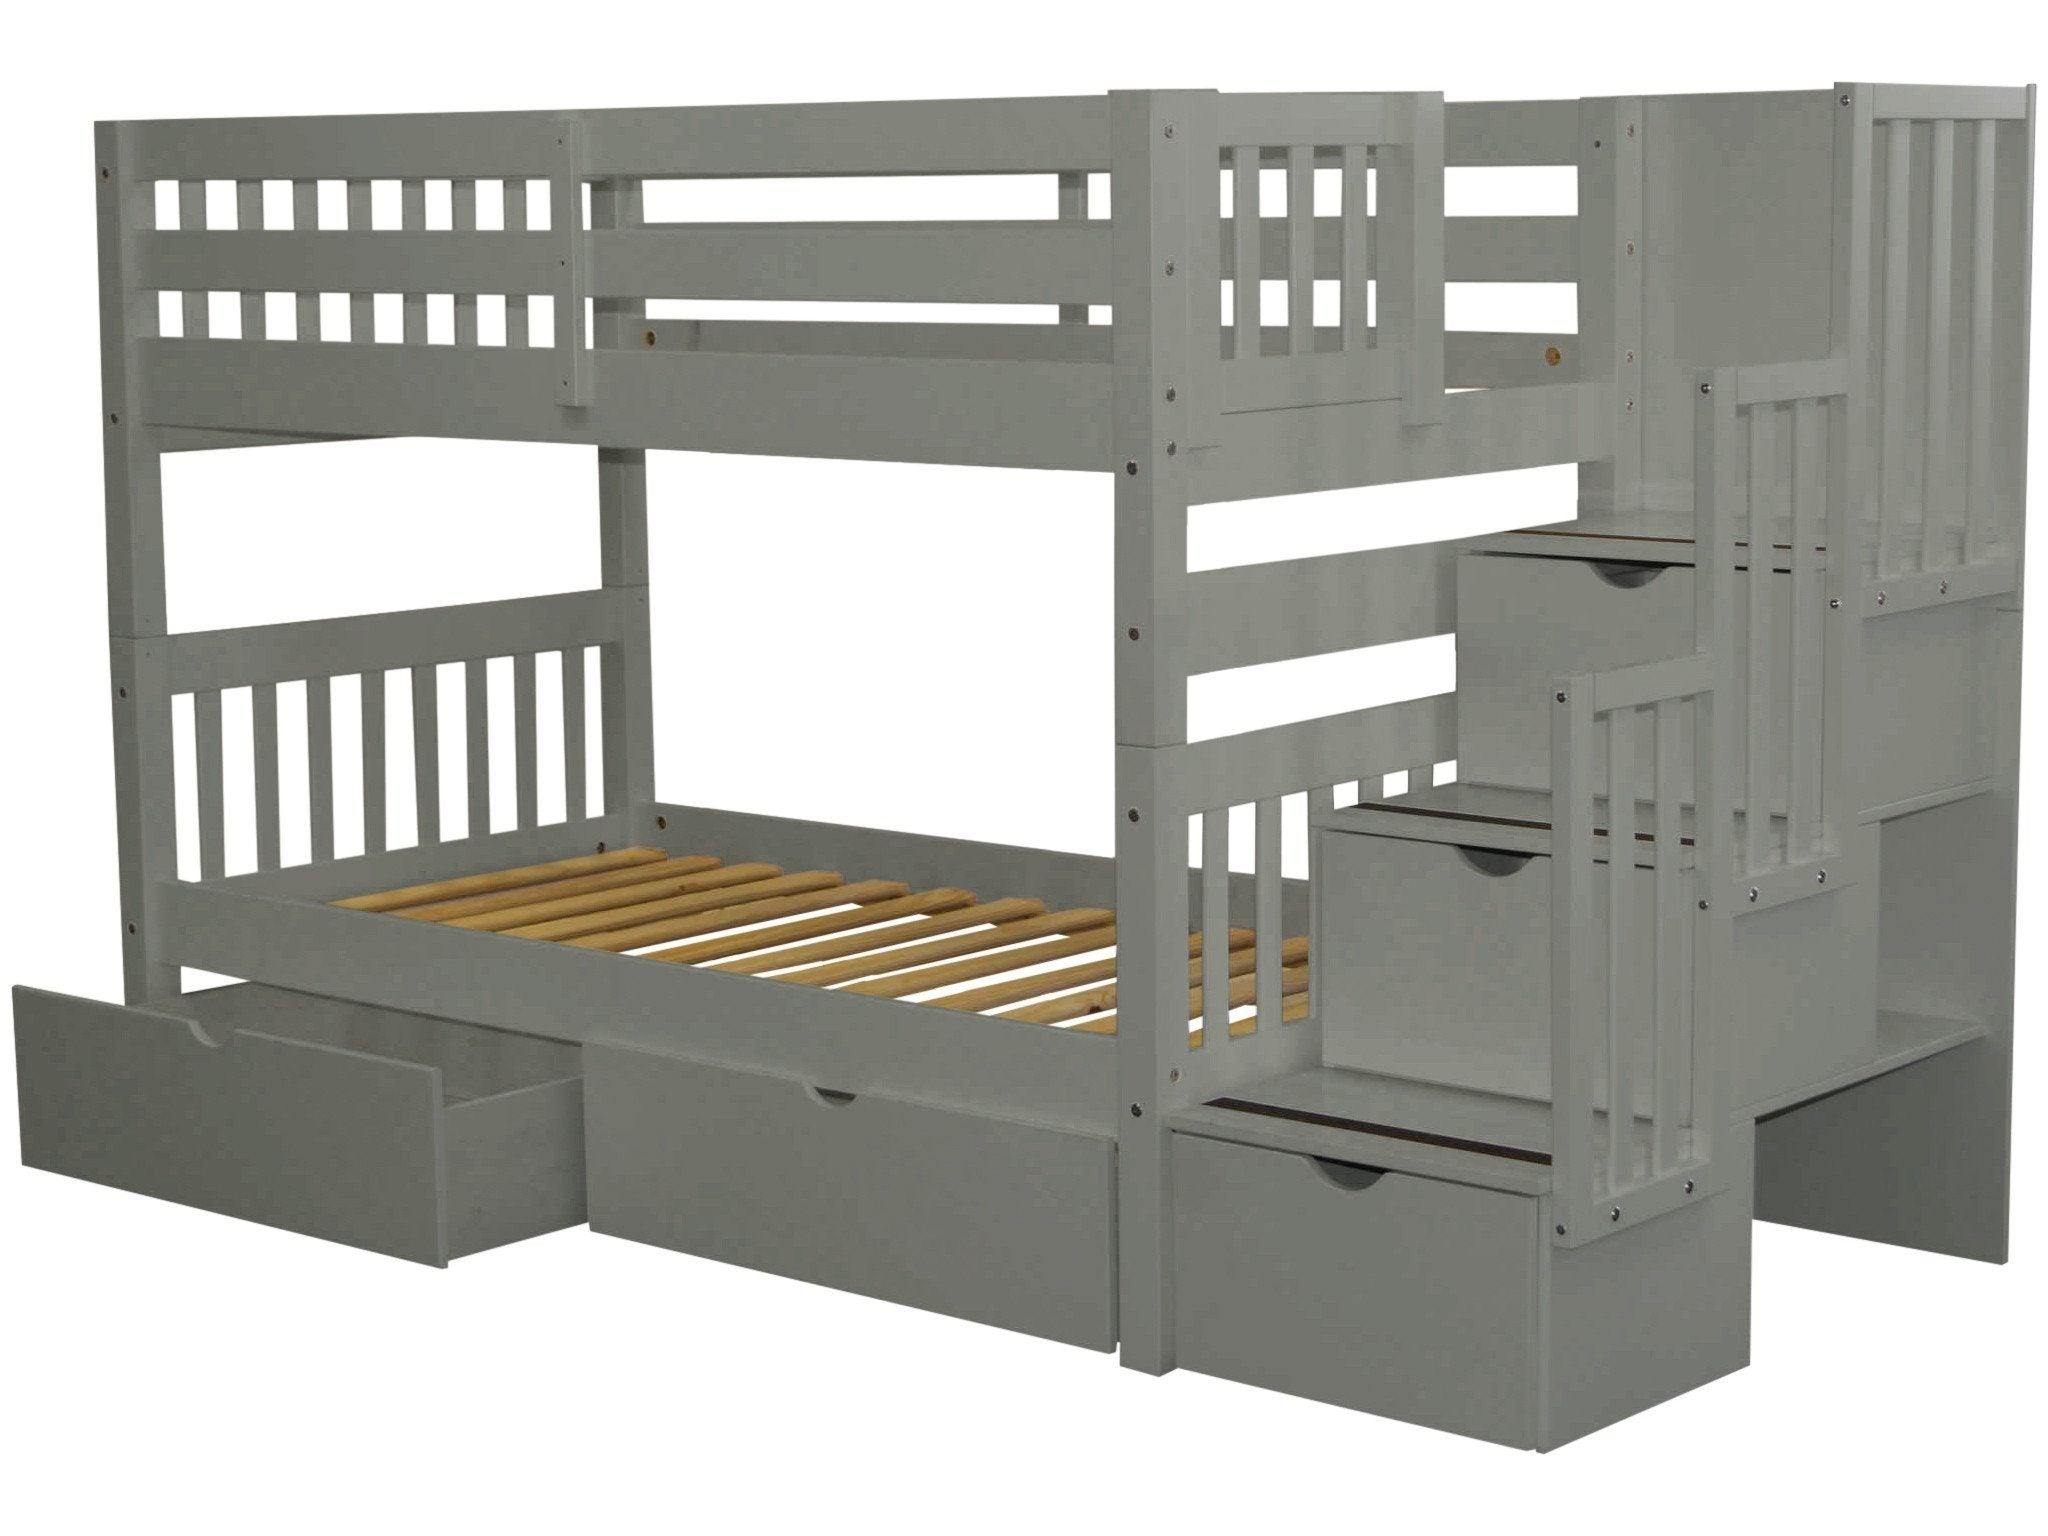 Bedz King Bunk Beds Twin Over Twin Stairway 3 Step 2 Bed Drawers